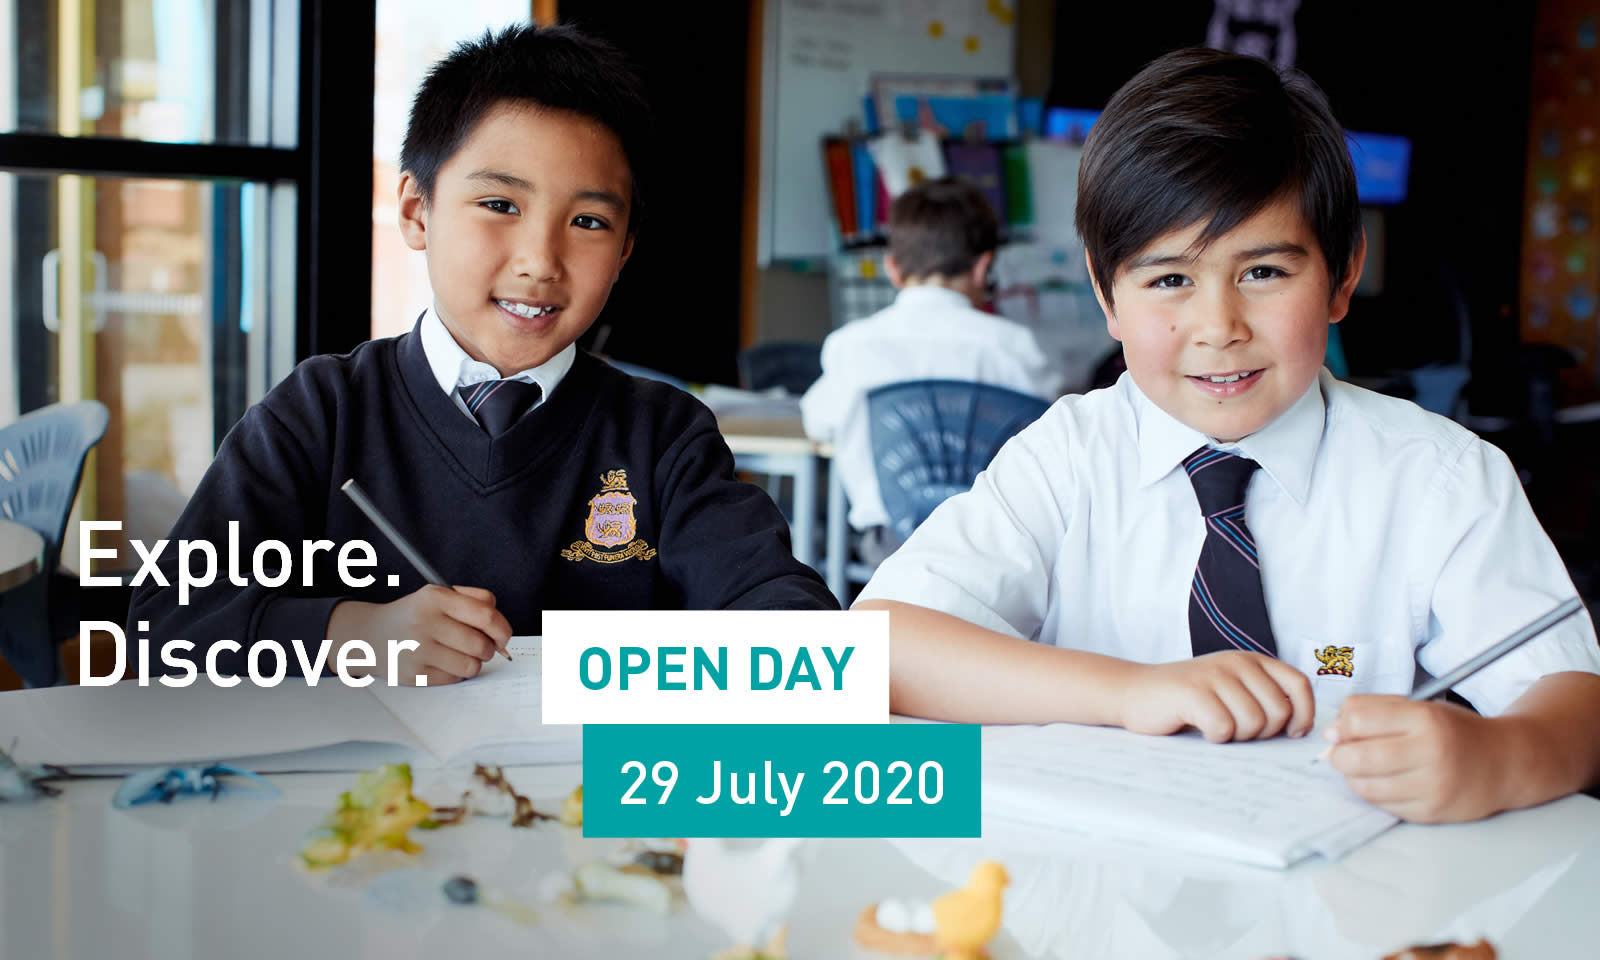 Explore the opportunities at our Open Day